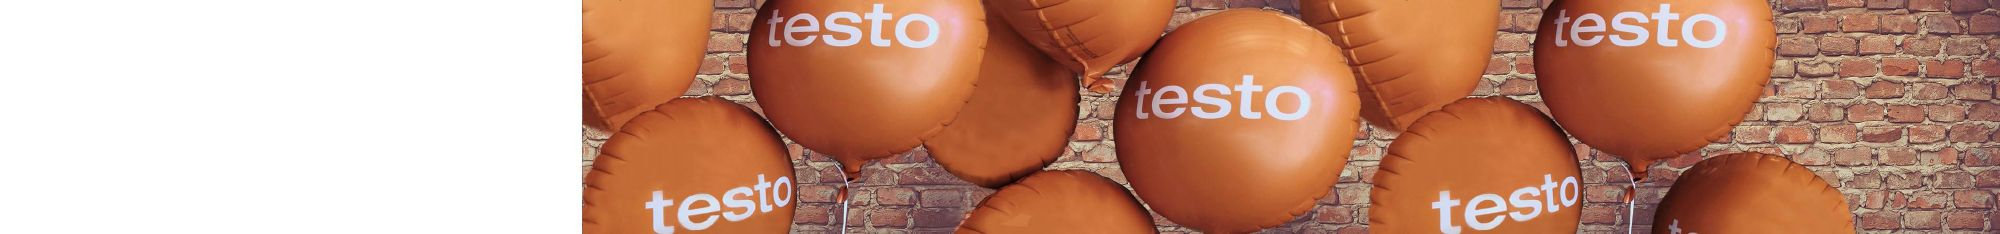 Testo <strong>Exhibitions and Events</strong>